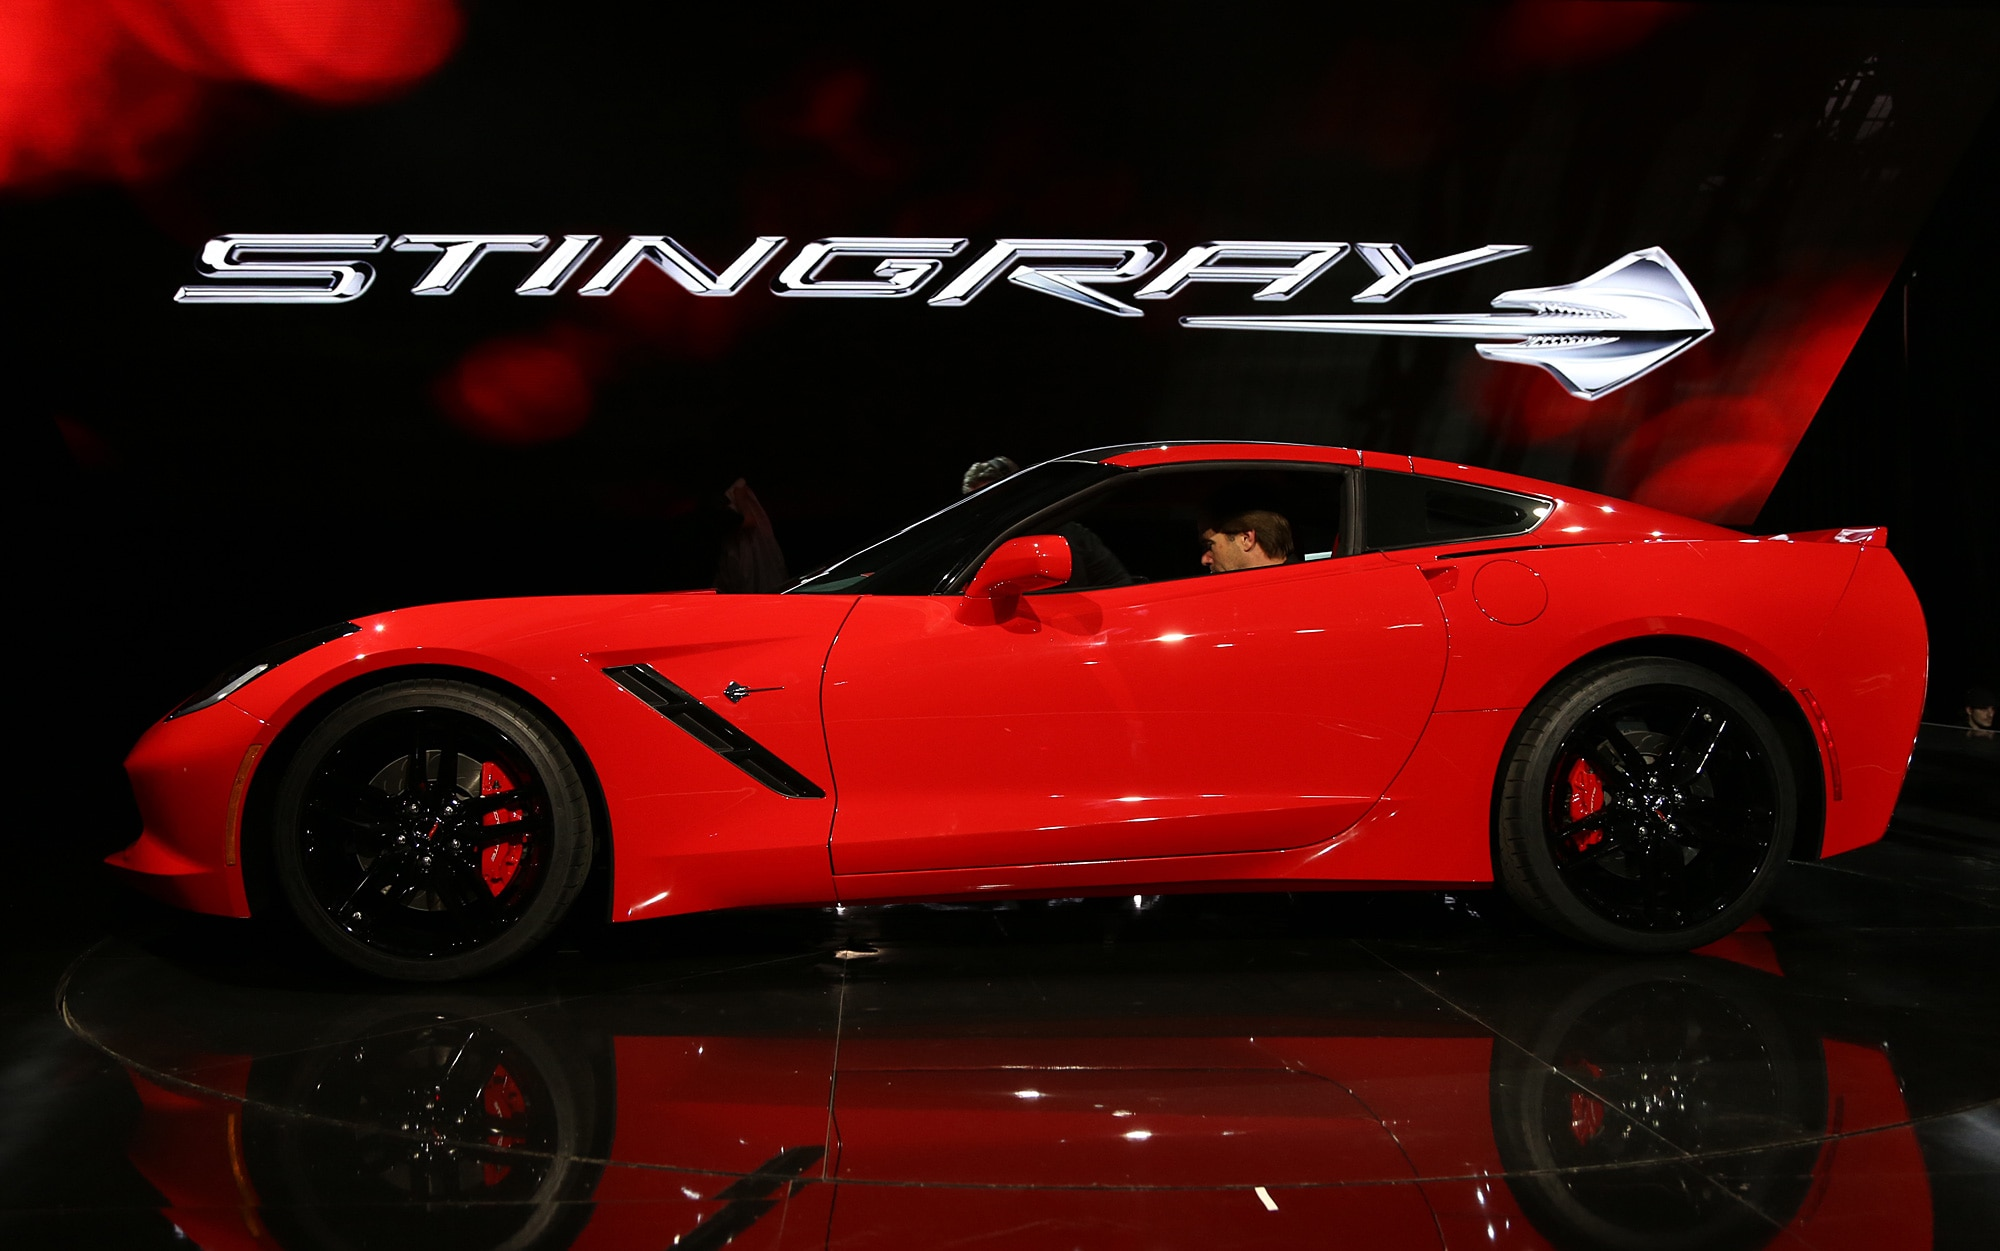 2014 Chevrolet Corvette Live Reveal Side View1